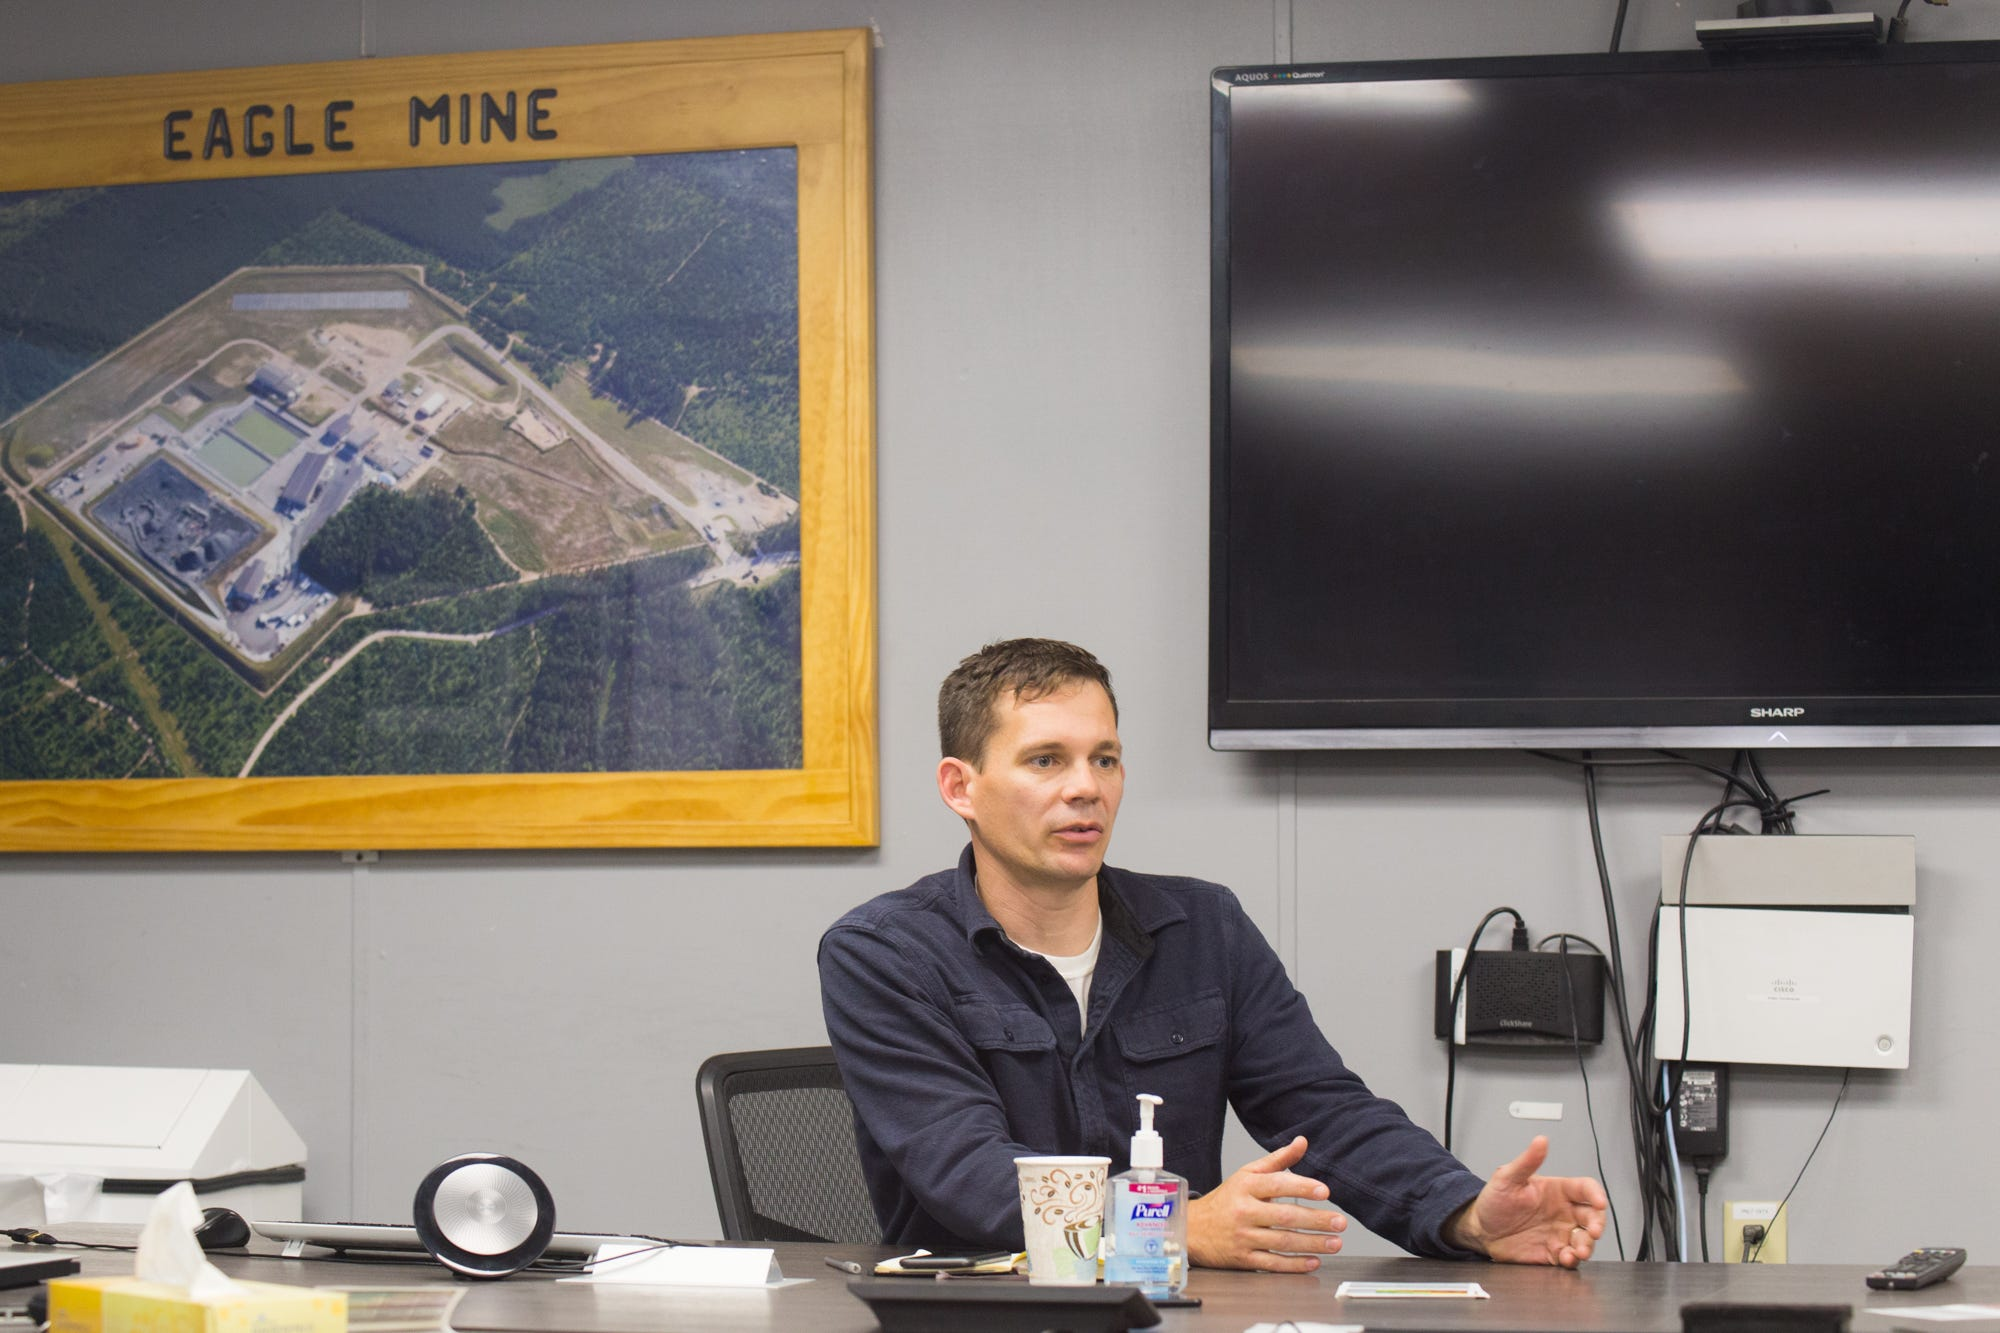 Darby Stacey, managing director of Eagle Mine, says unpredictable permitting processes can make it challenging for new mines to open.